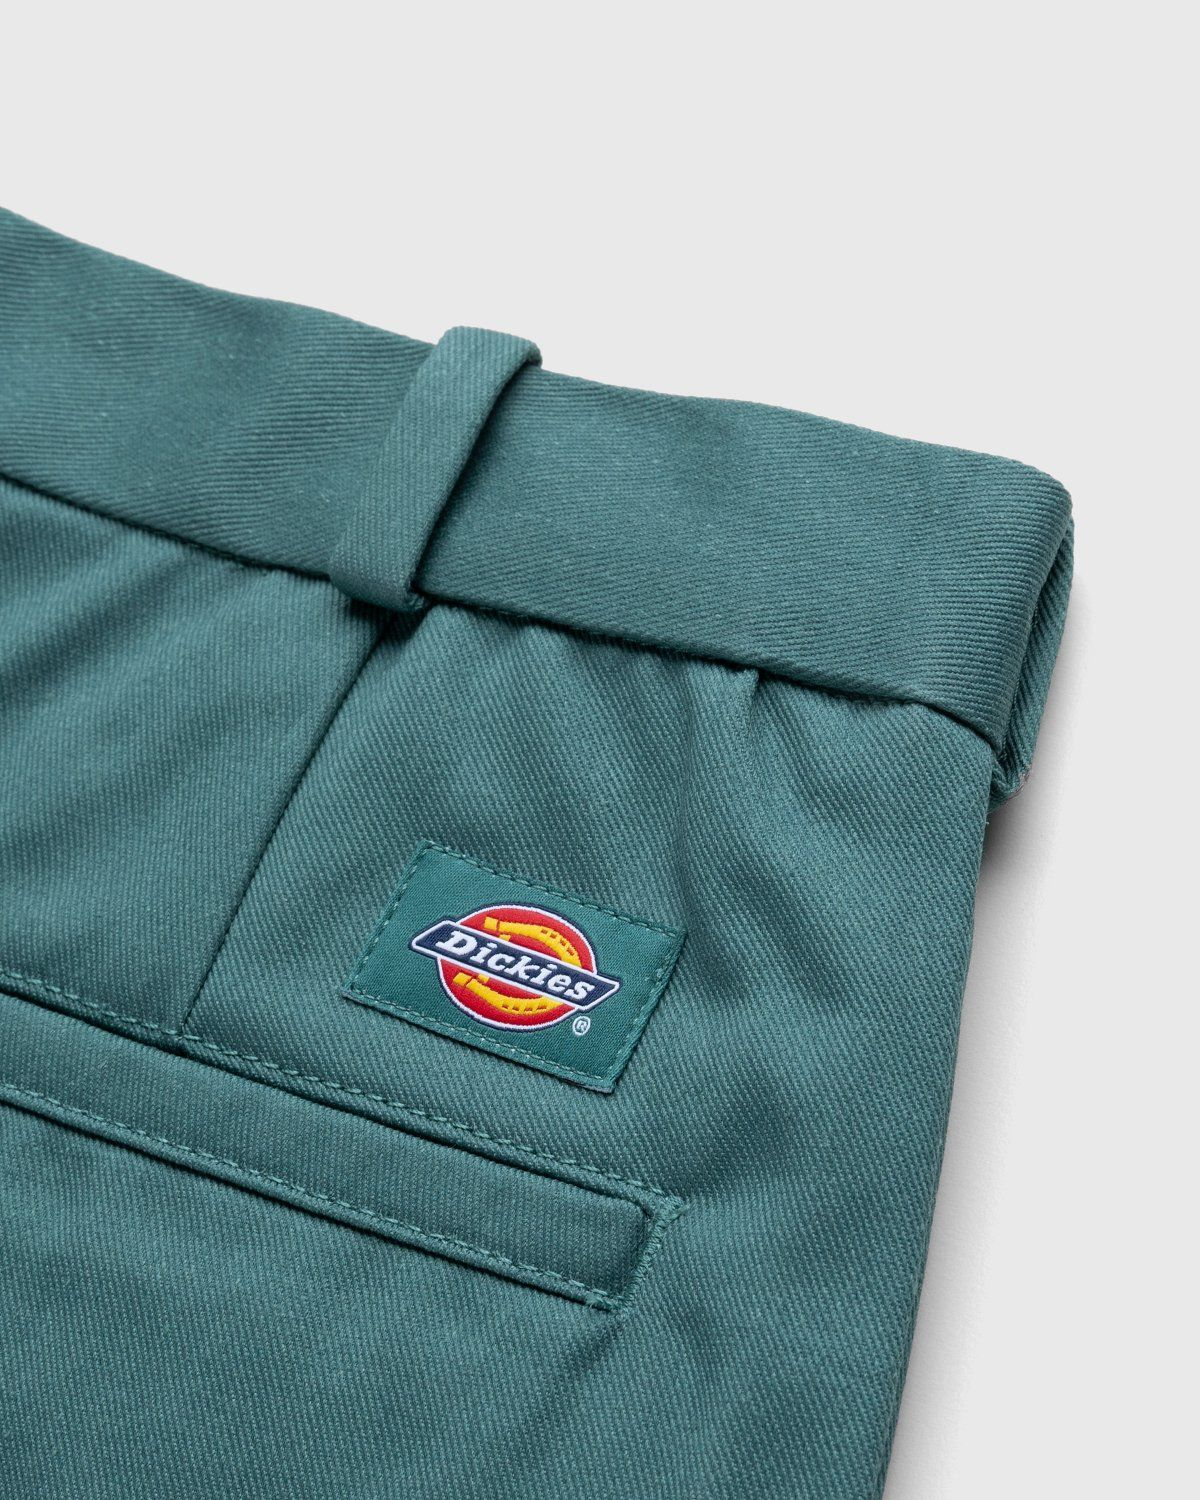 Highsnobiety x Dickies – Pleated Work Pants Lincoln Green - Image 5